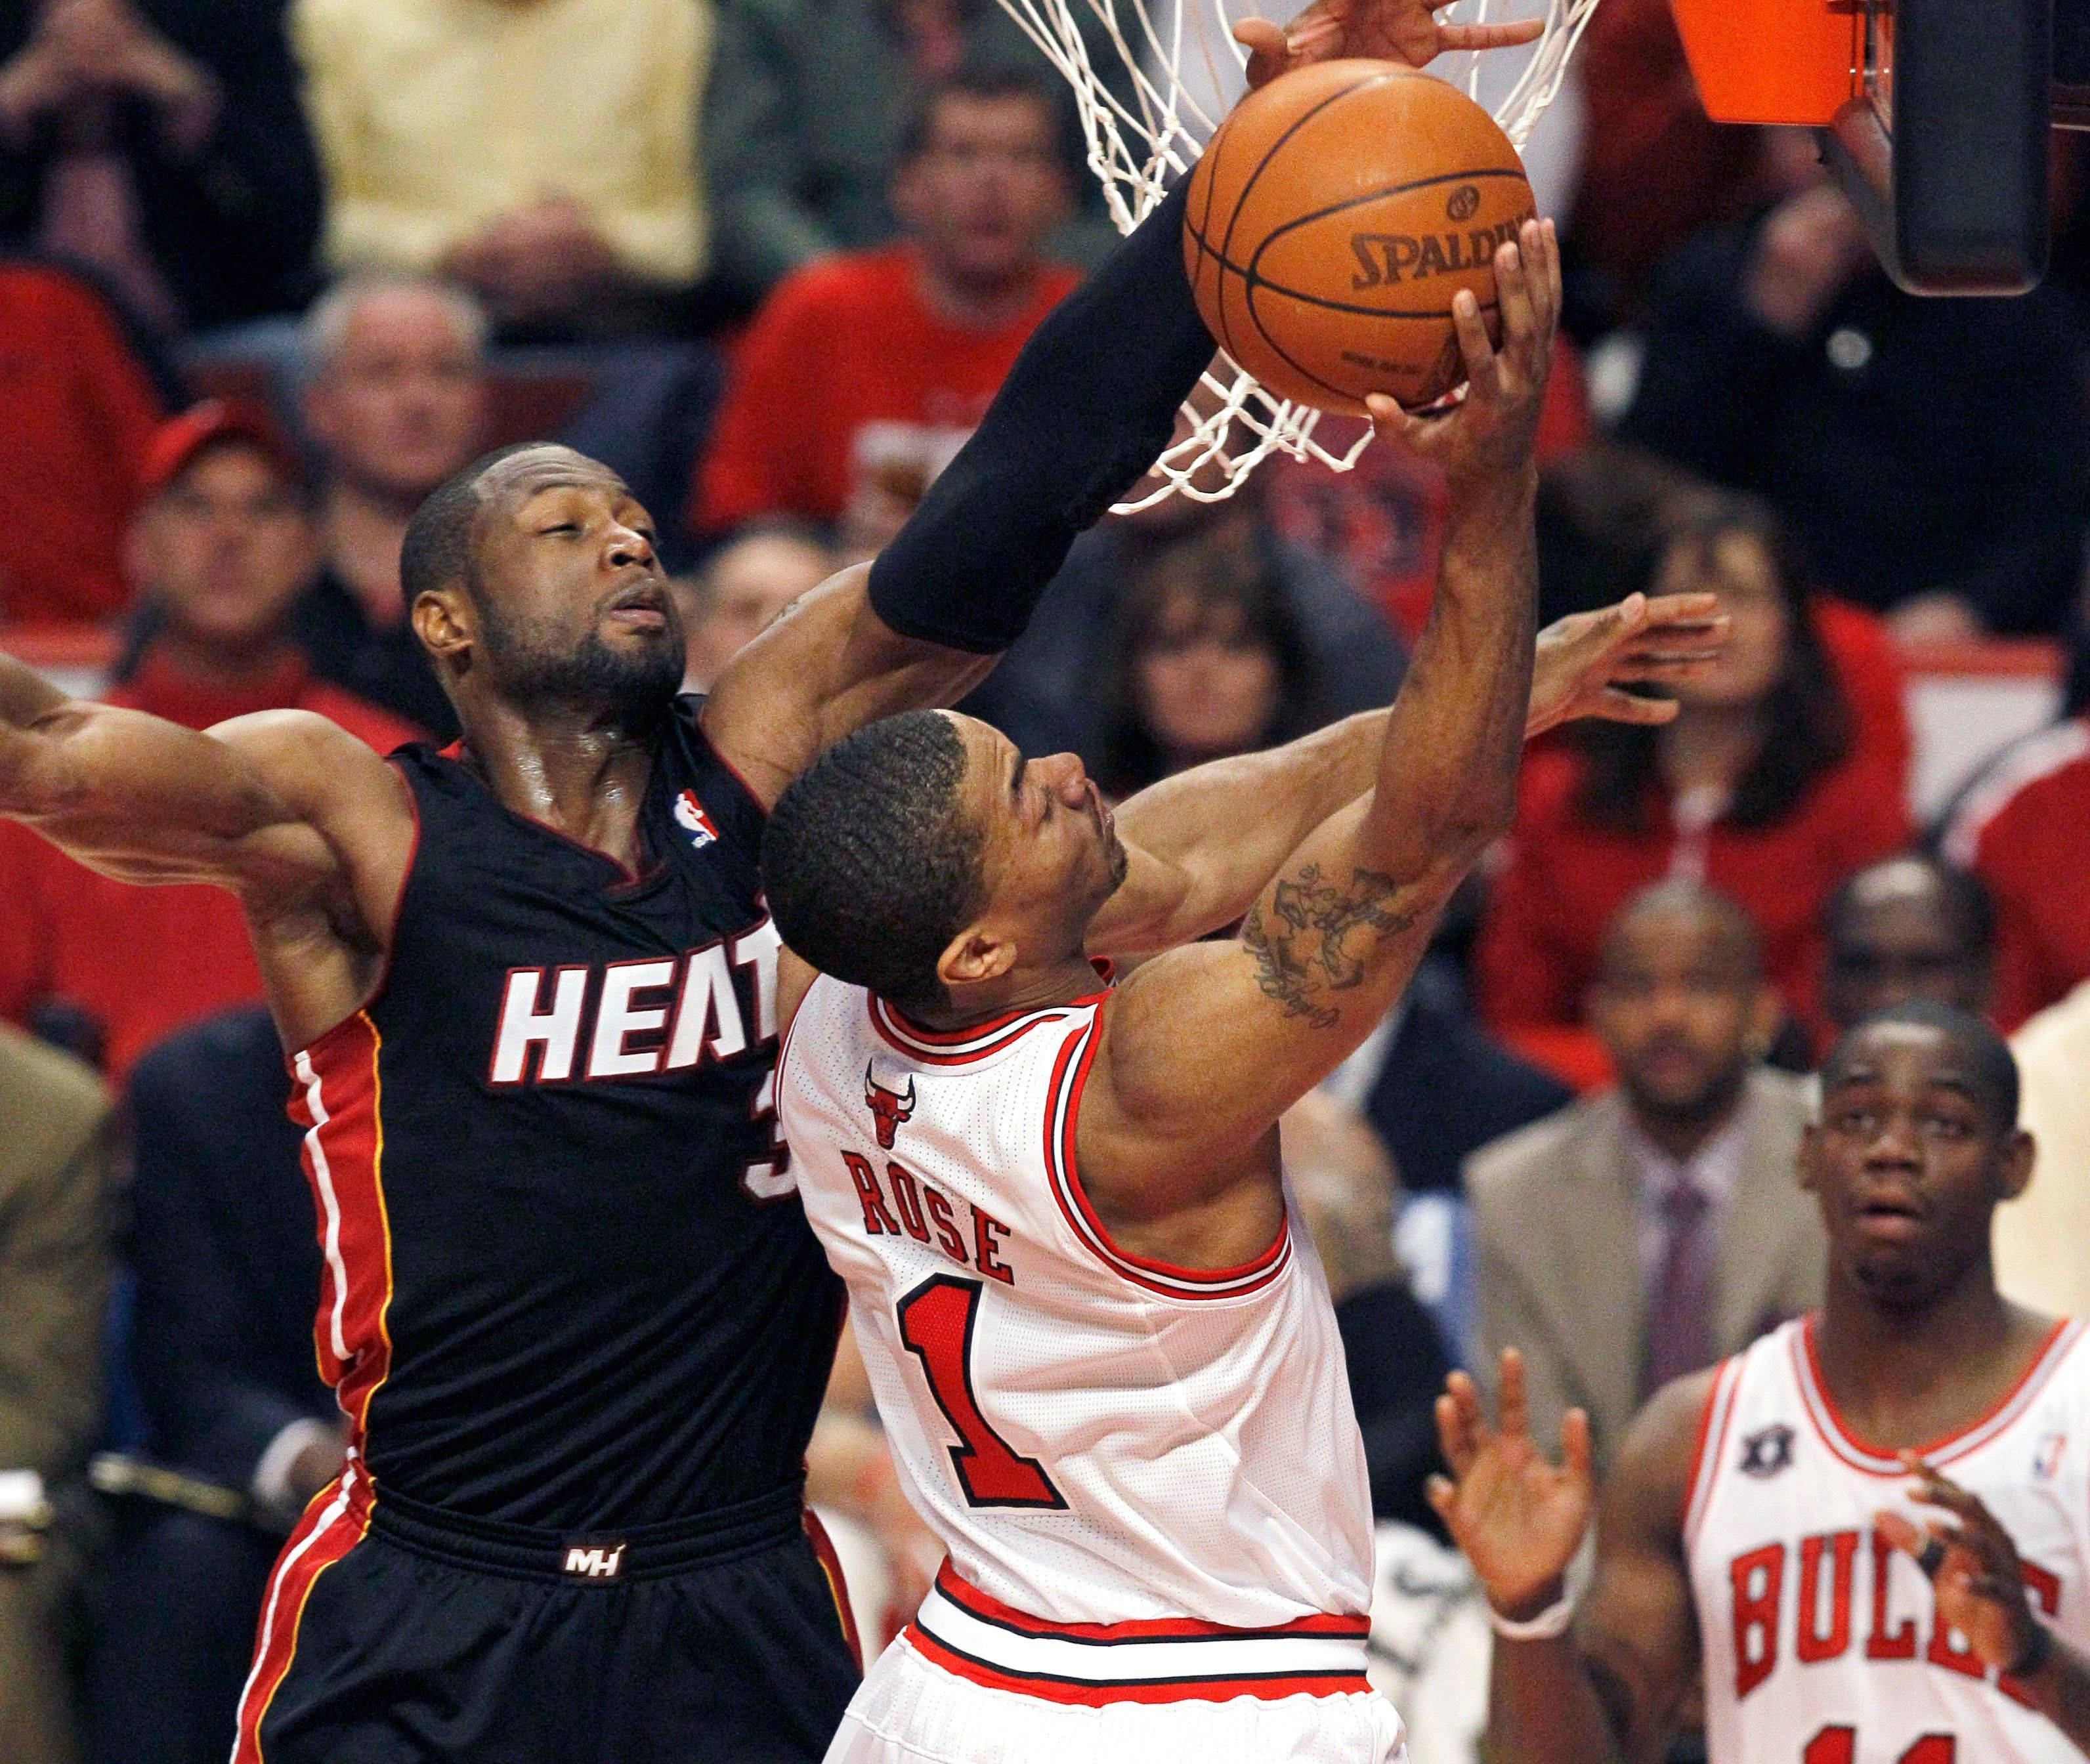 Chicago Bulls guard Derrick Rose, right, shoots over the out stretched arm of Miami Heat guard Dwyane Wade during the first quarter.